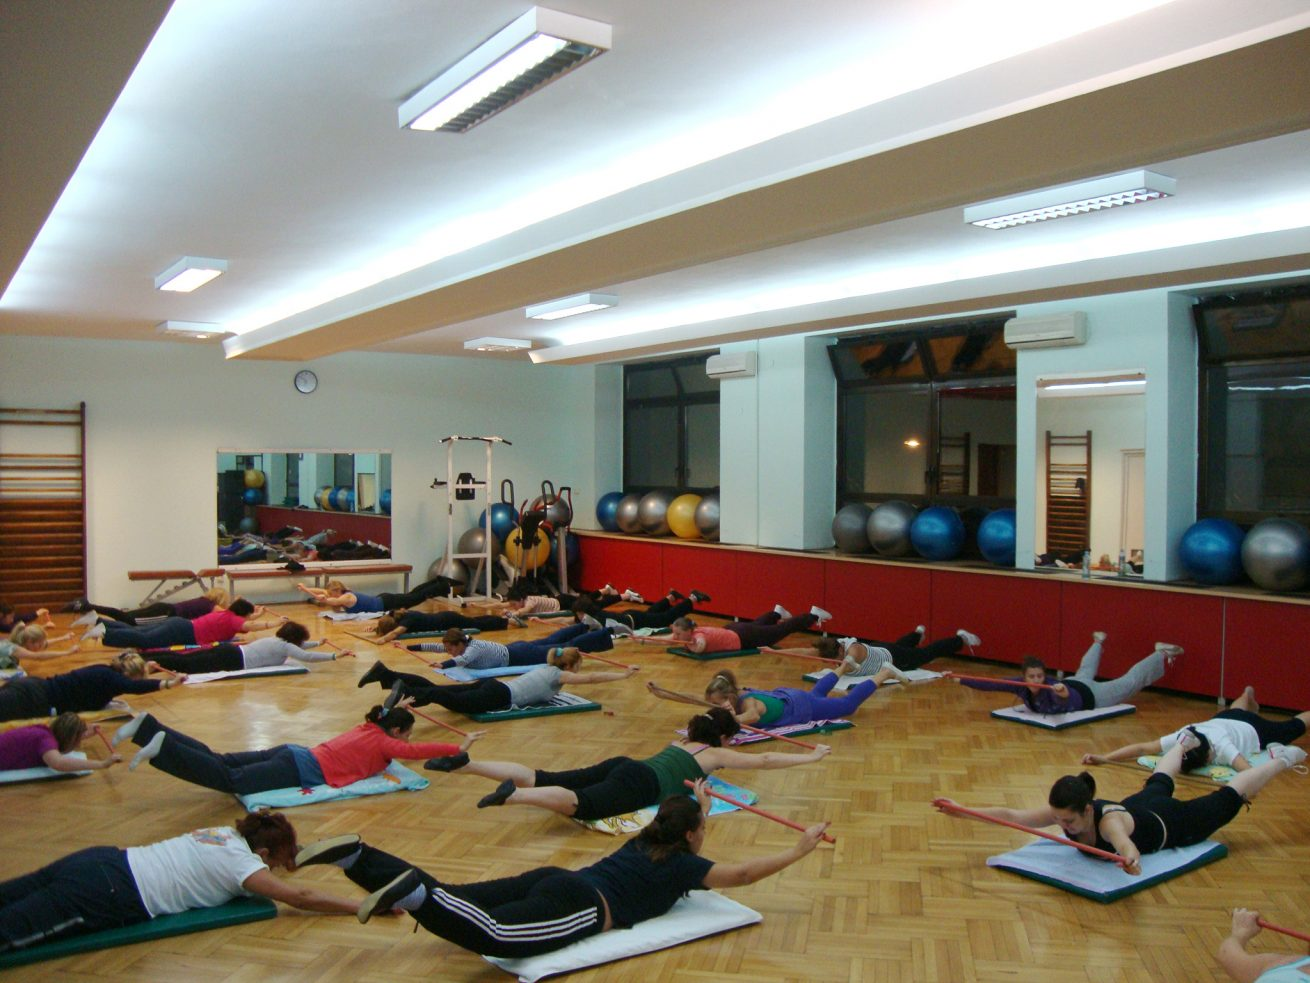 SRC TAŠMAJDAN 2008 PROGRAM PILATES